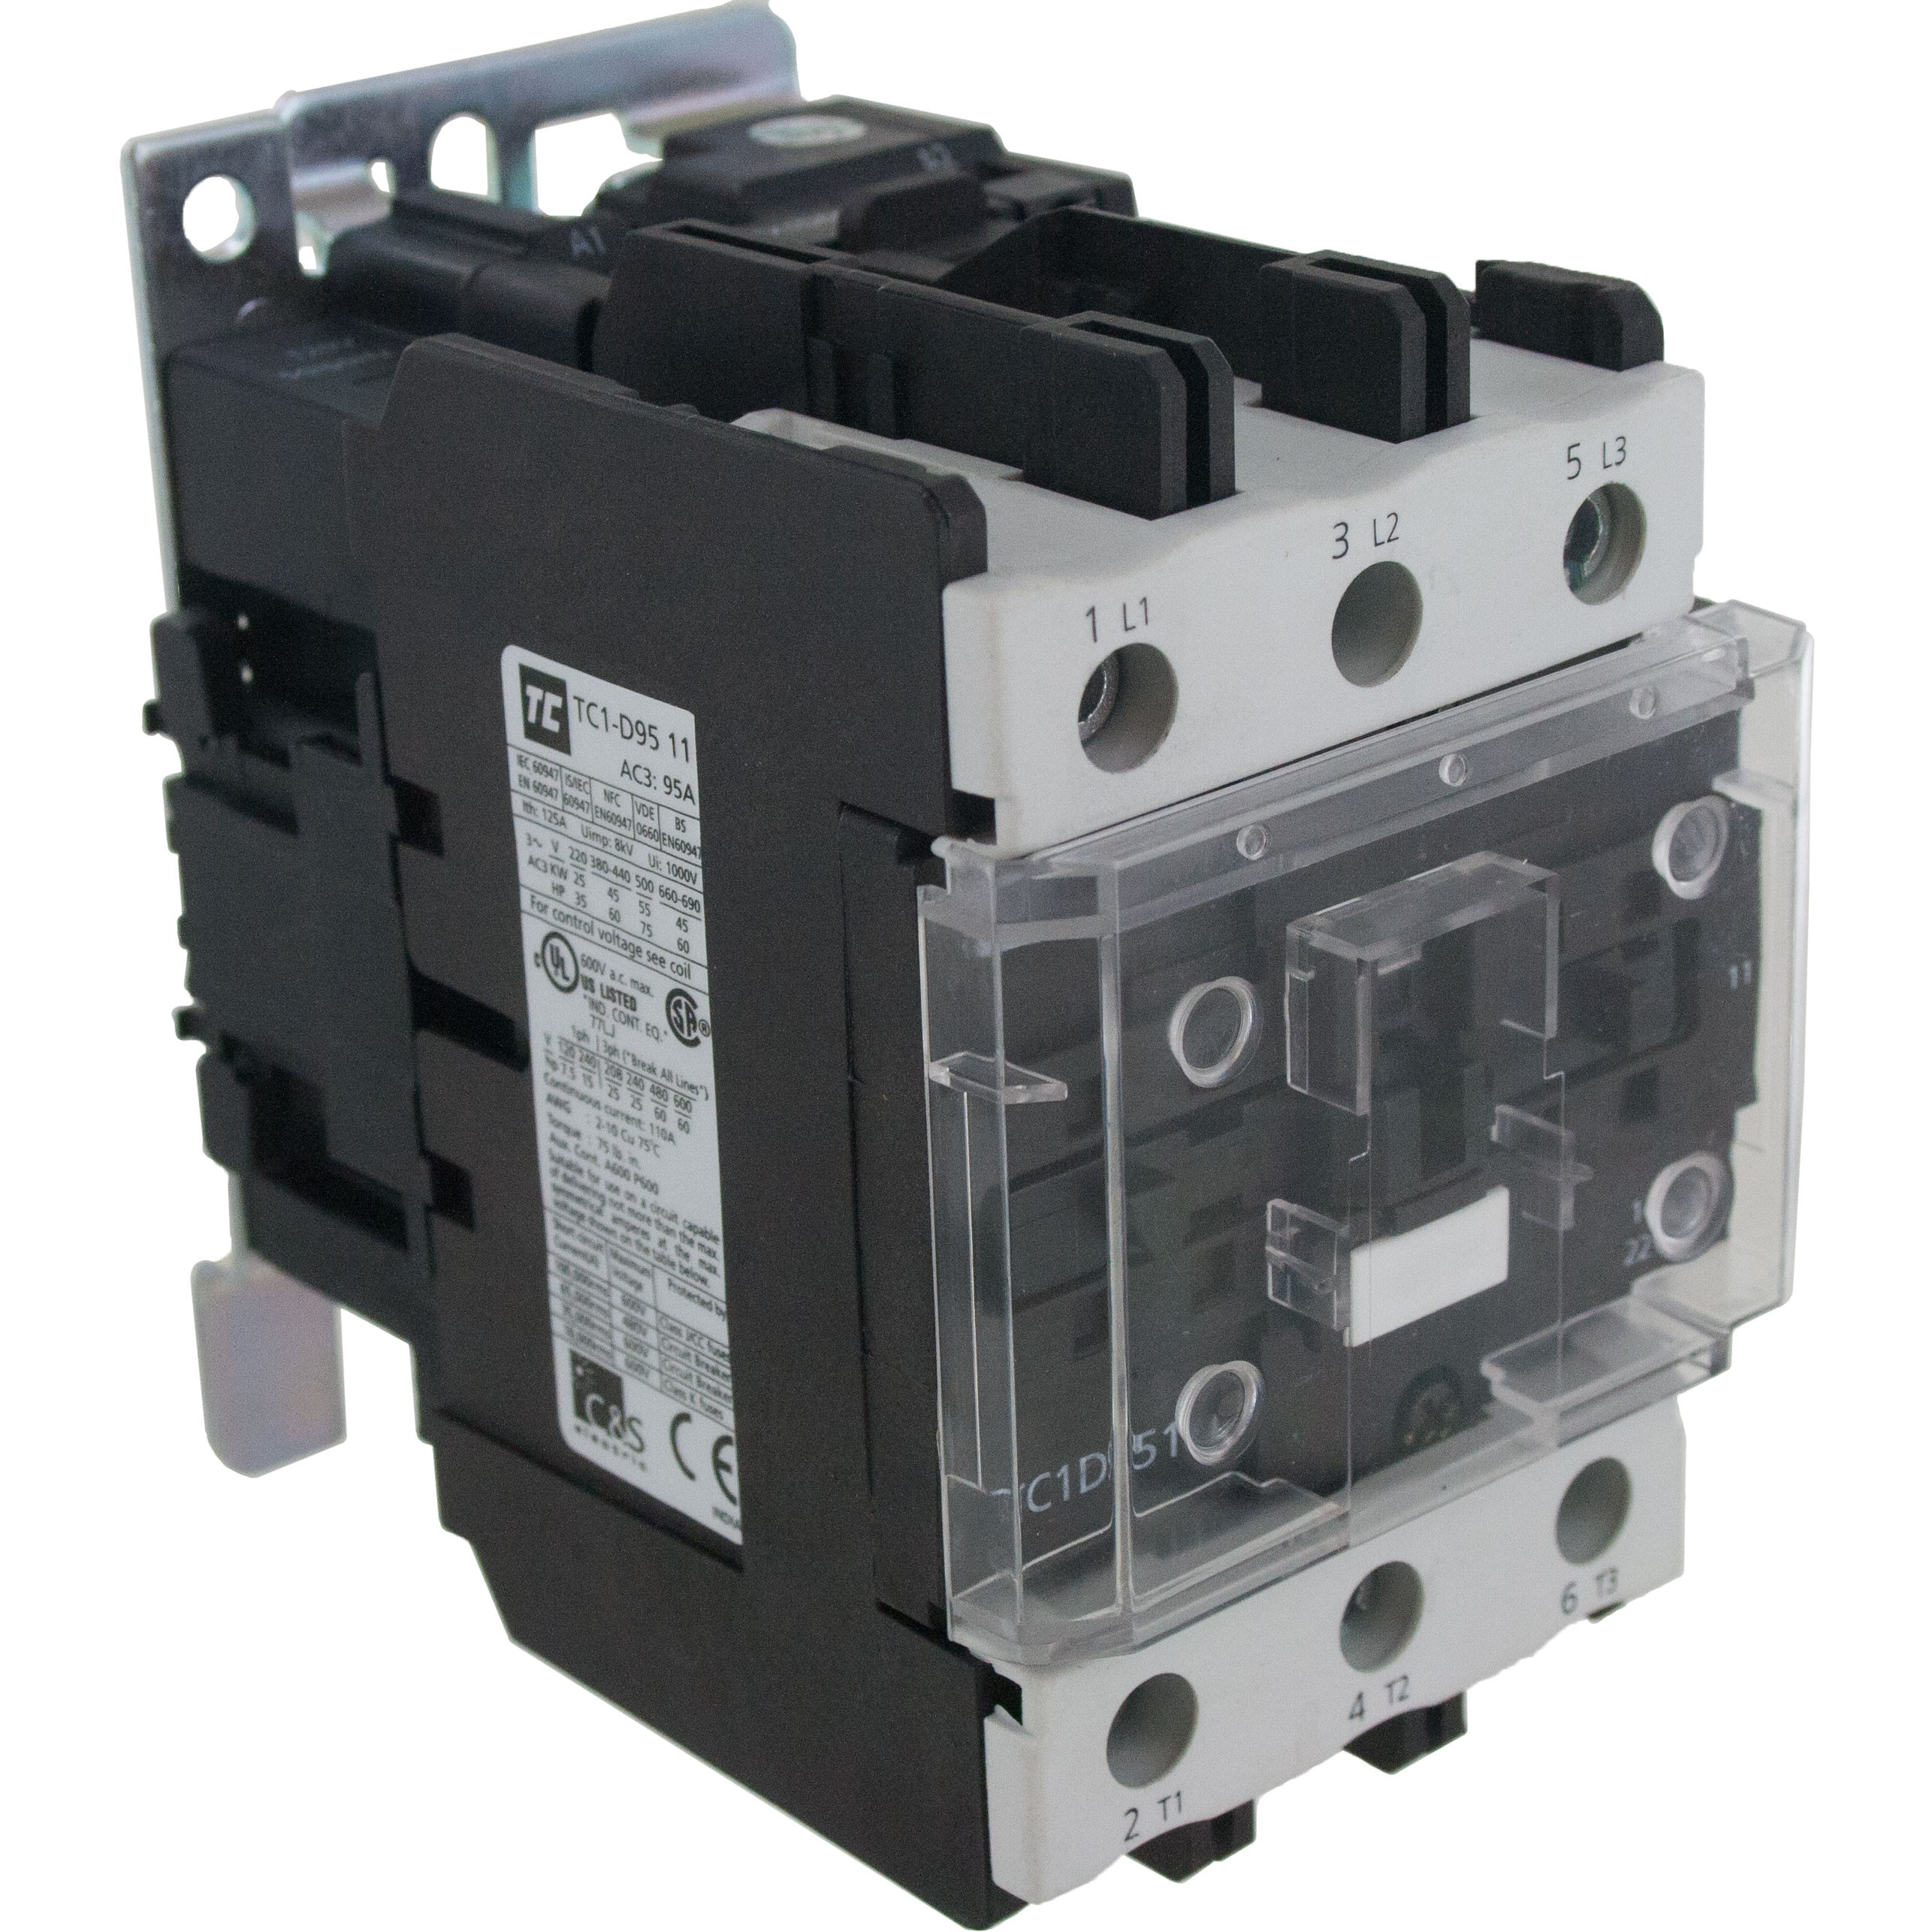 3 Pole Contactor 95 Amp 1 N/O - 1 N/C 120 Volt AC Coil Angle